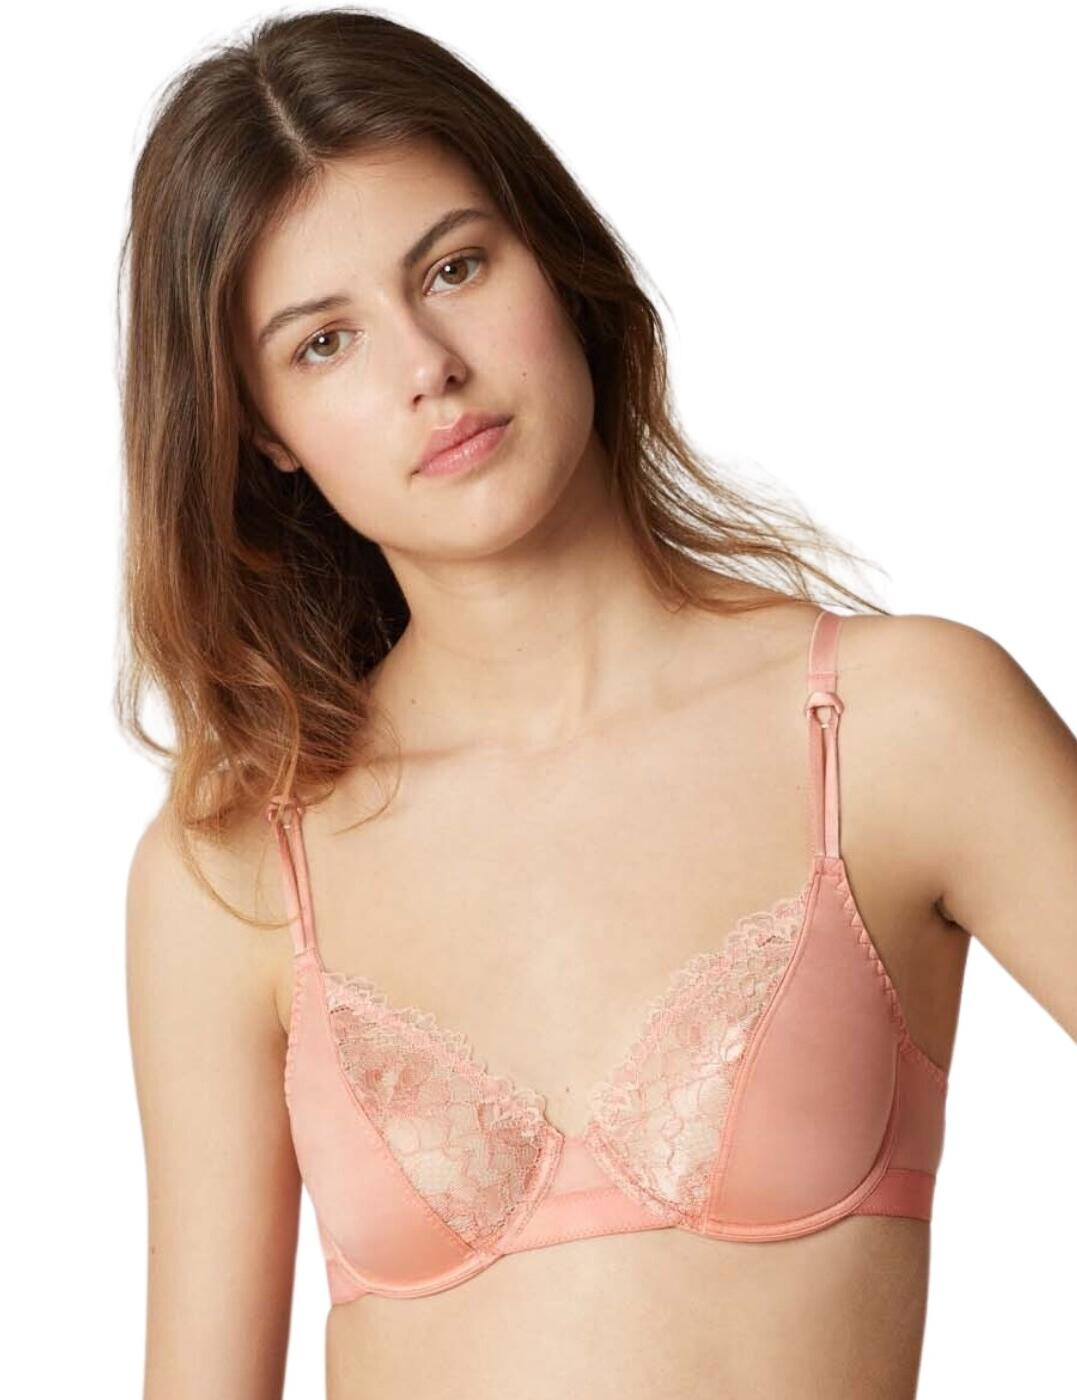 20533 Maison Lejaby Shade Underwired Bra - 20533 Freesia